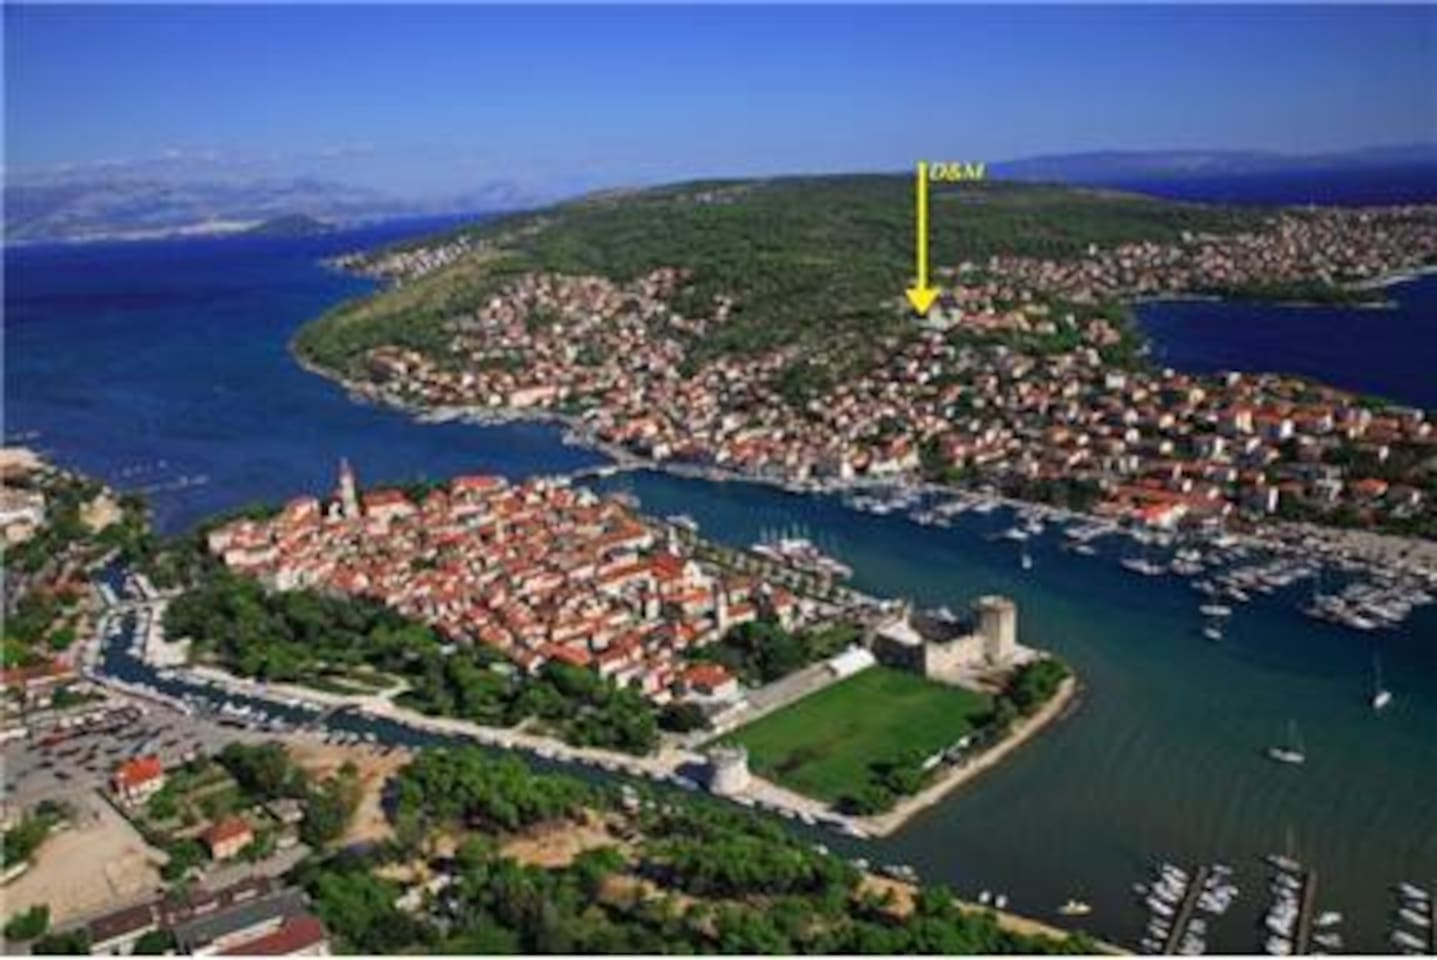 Location - 5min walk to the old town and 10 min walk to the nearest beach